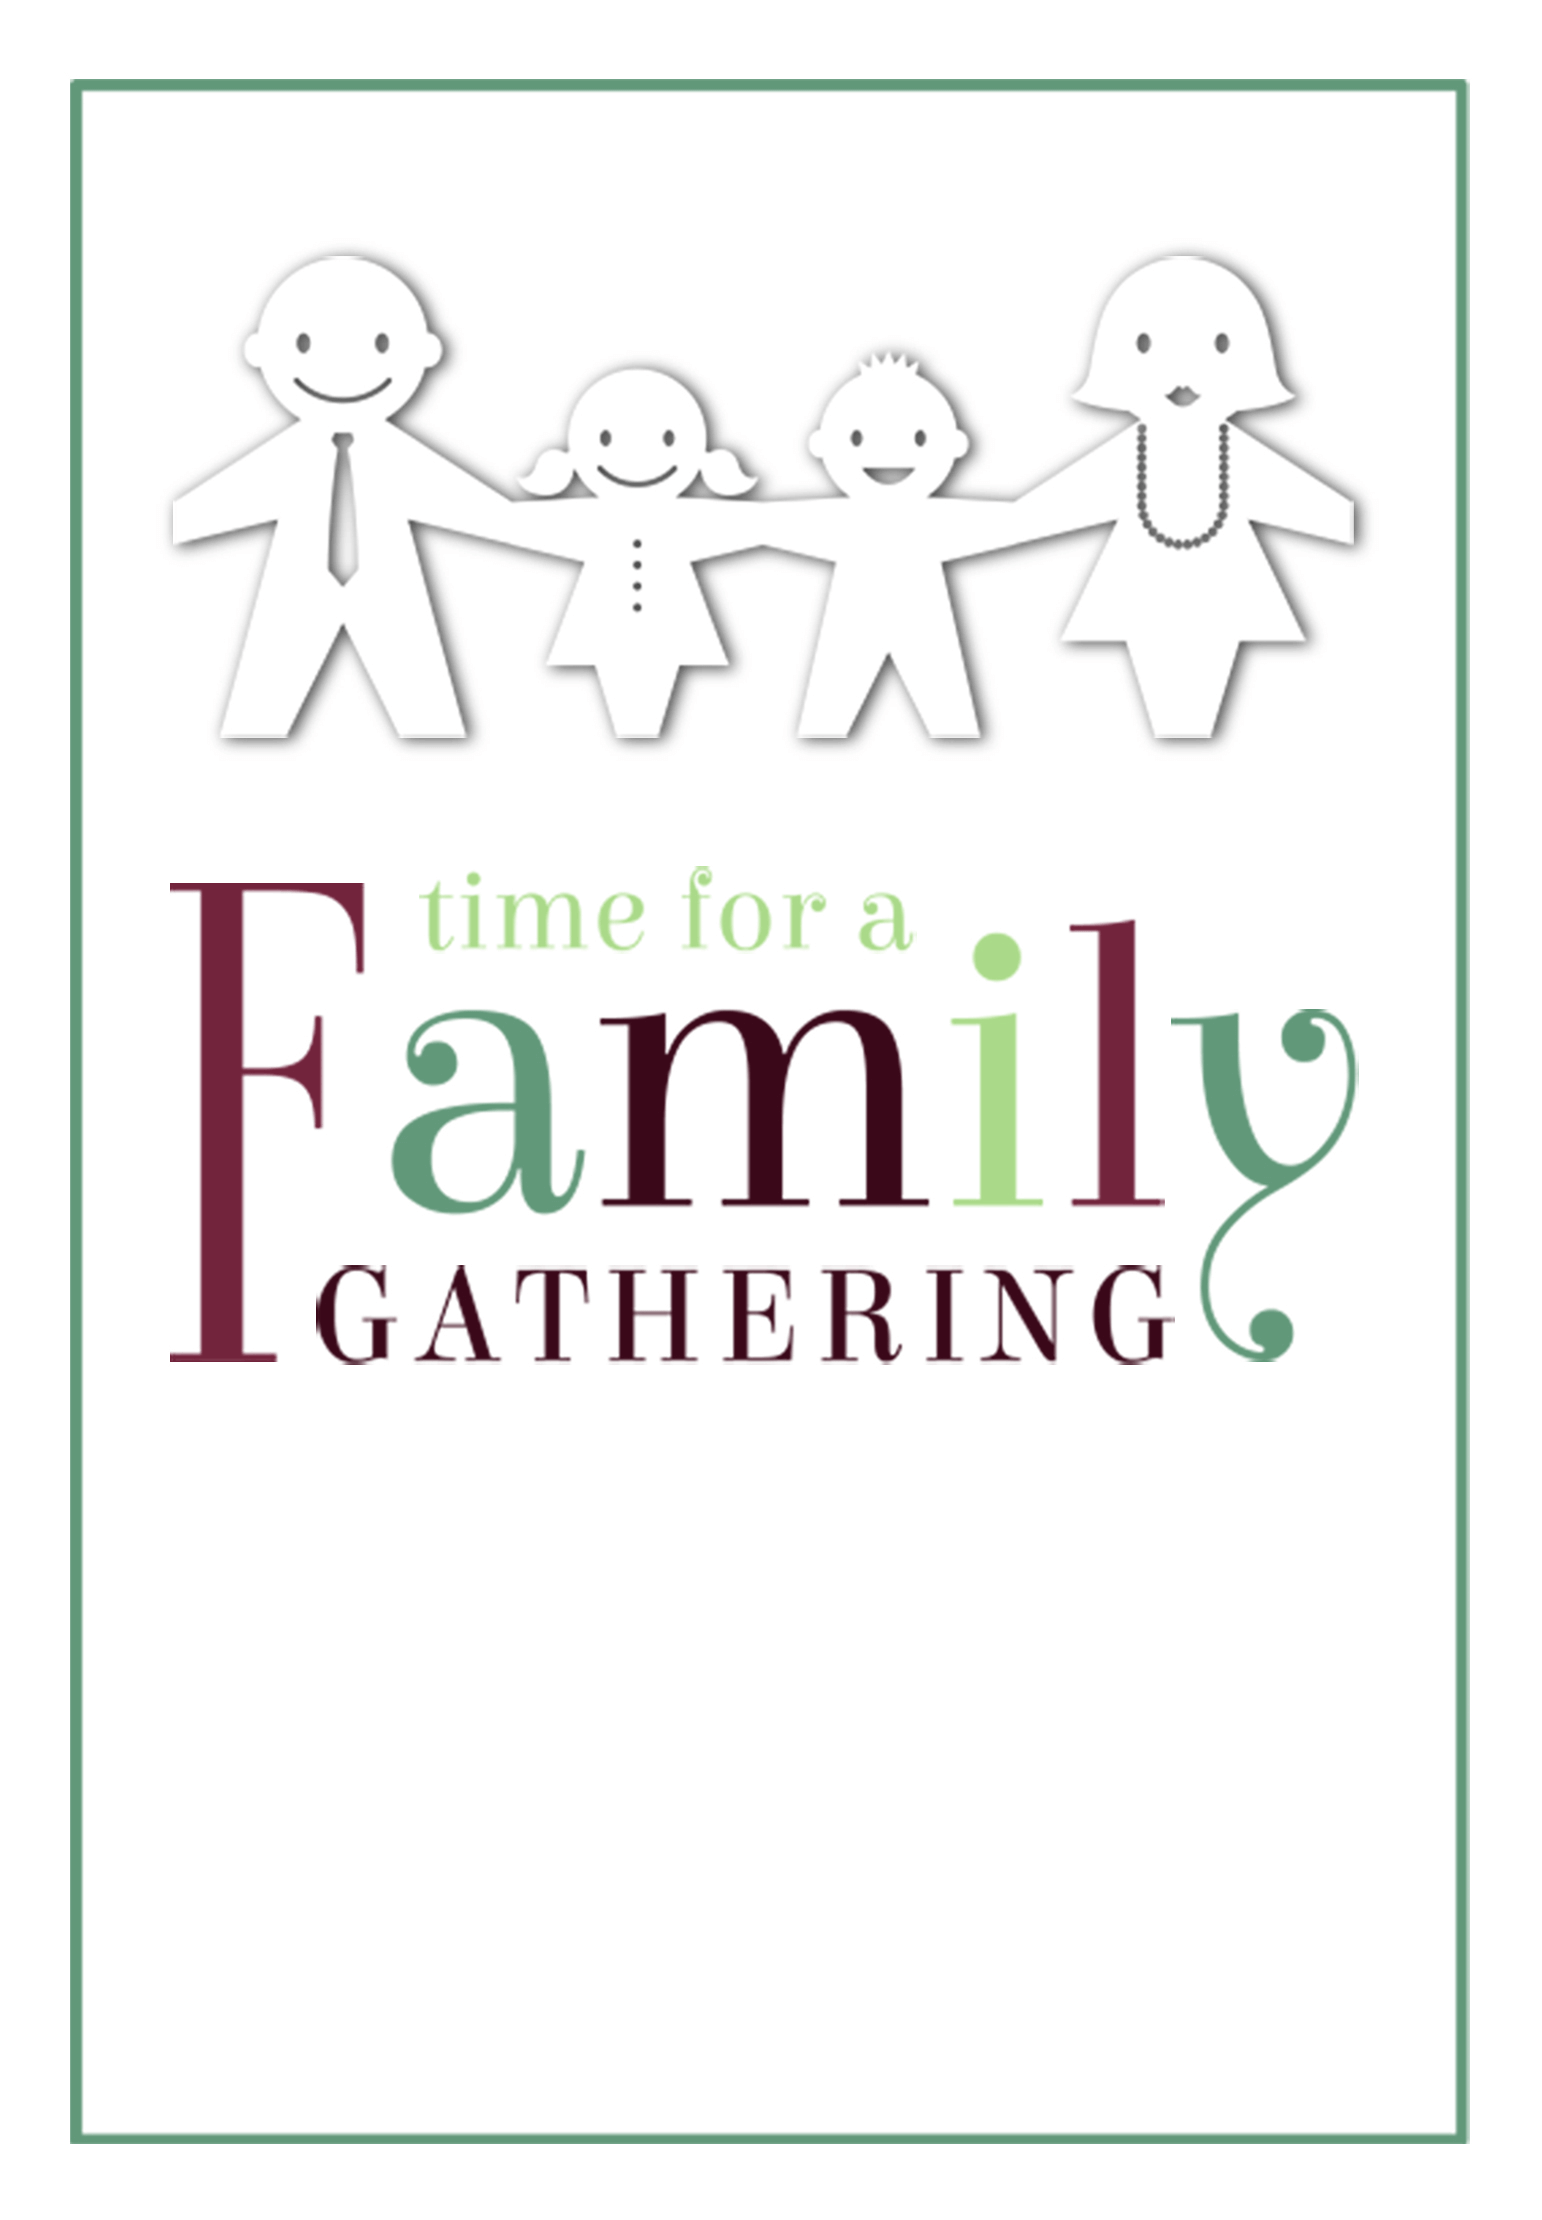 Time for a family gathering free printable family reunion time for a family gathering free printable family reunion invitation template greetings island stopboris